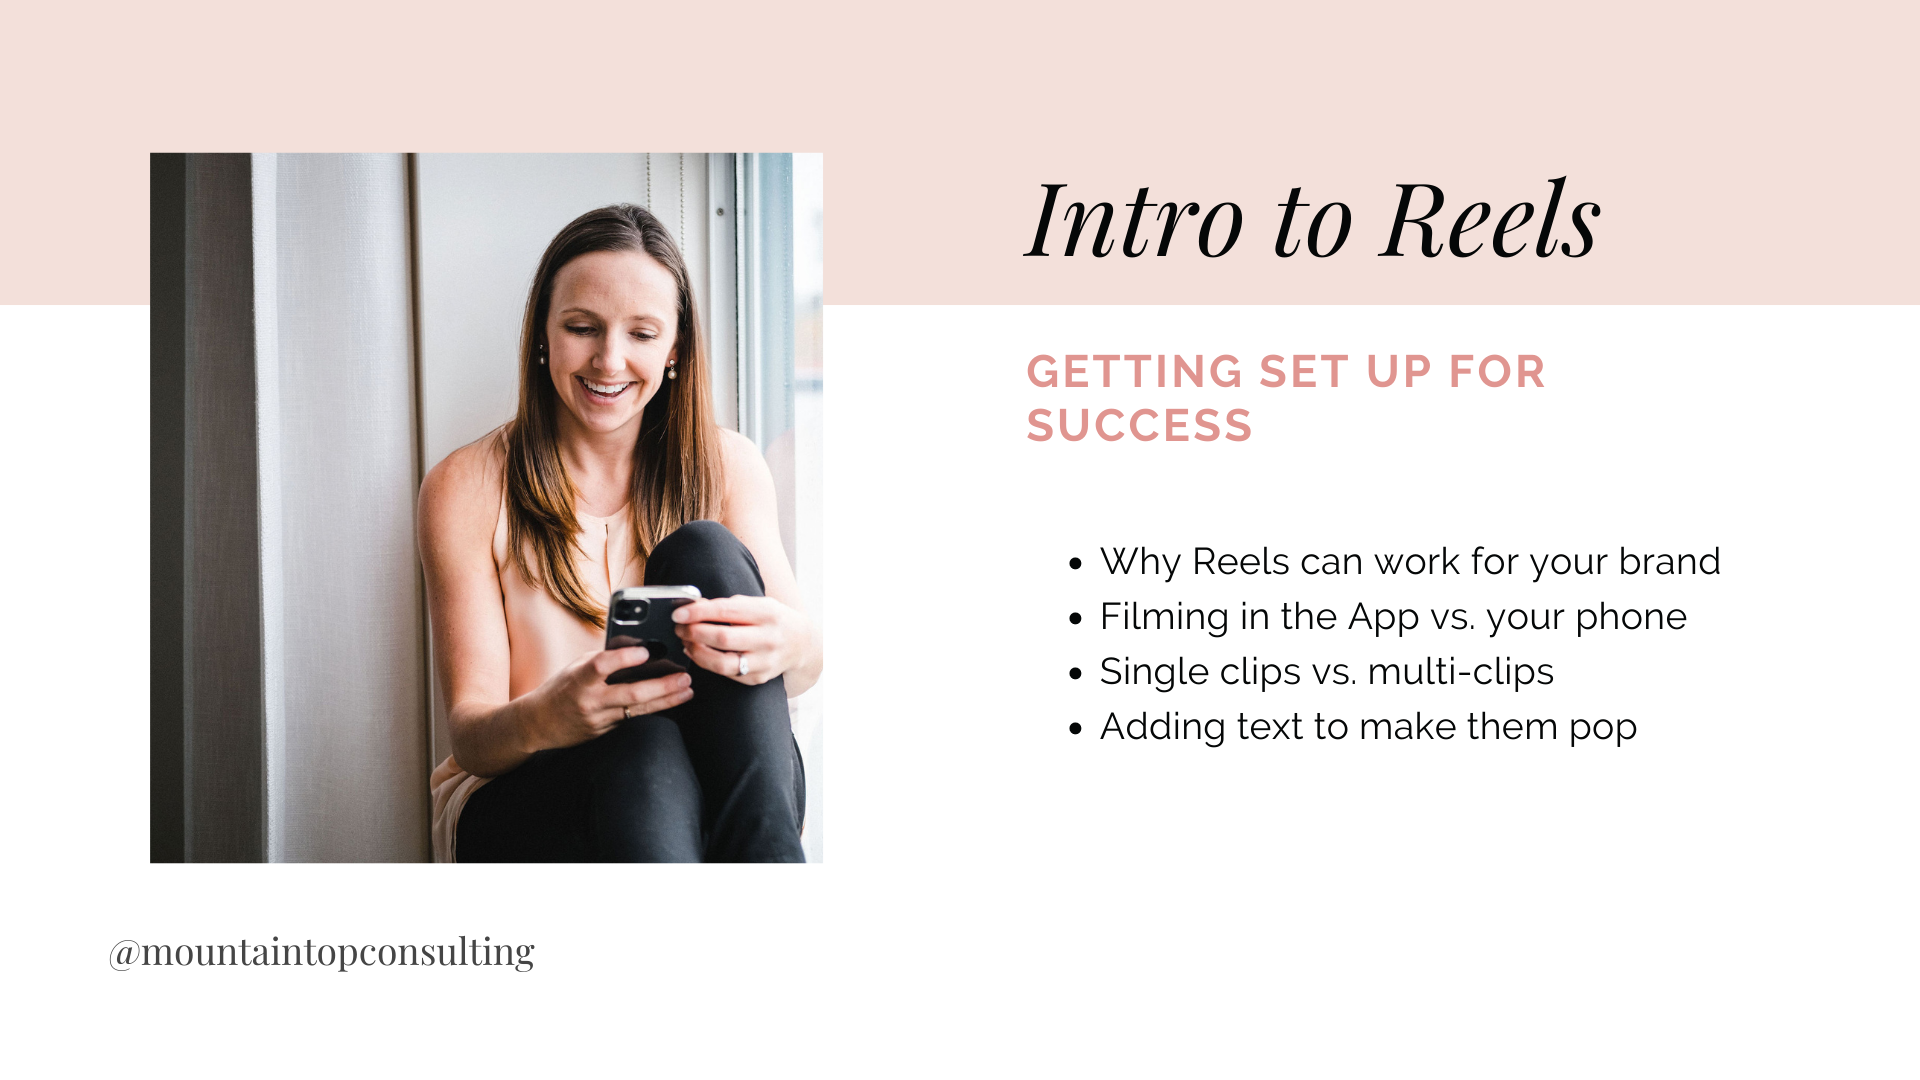 Intro to Reels 101